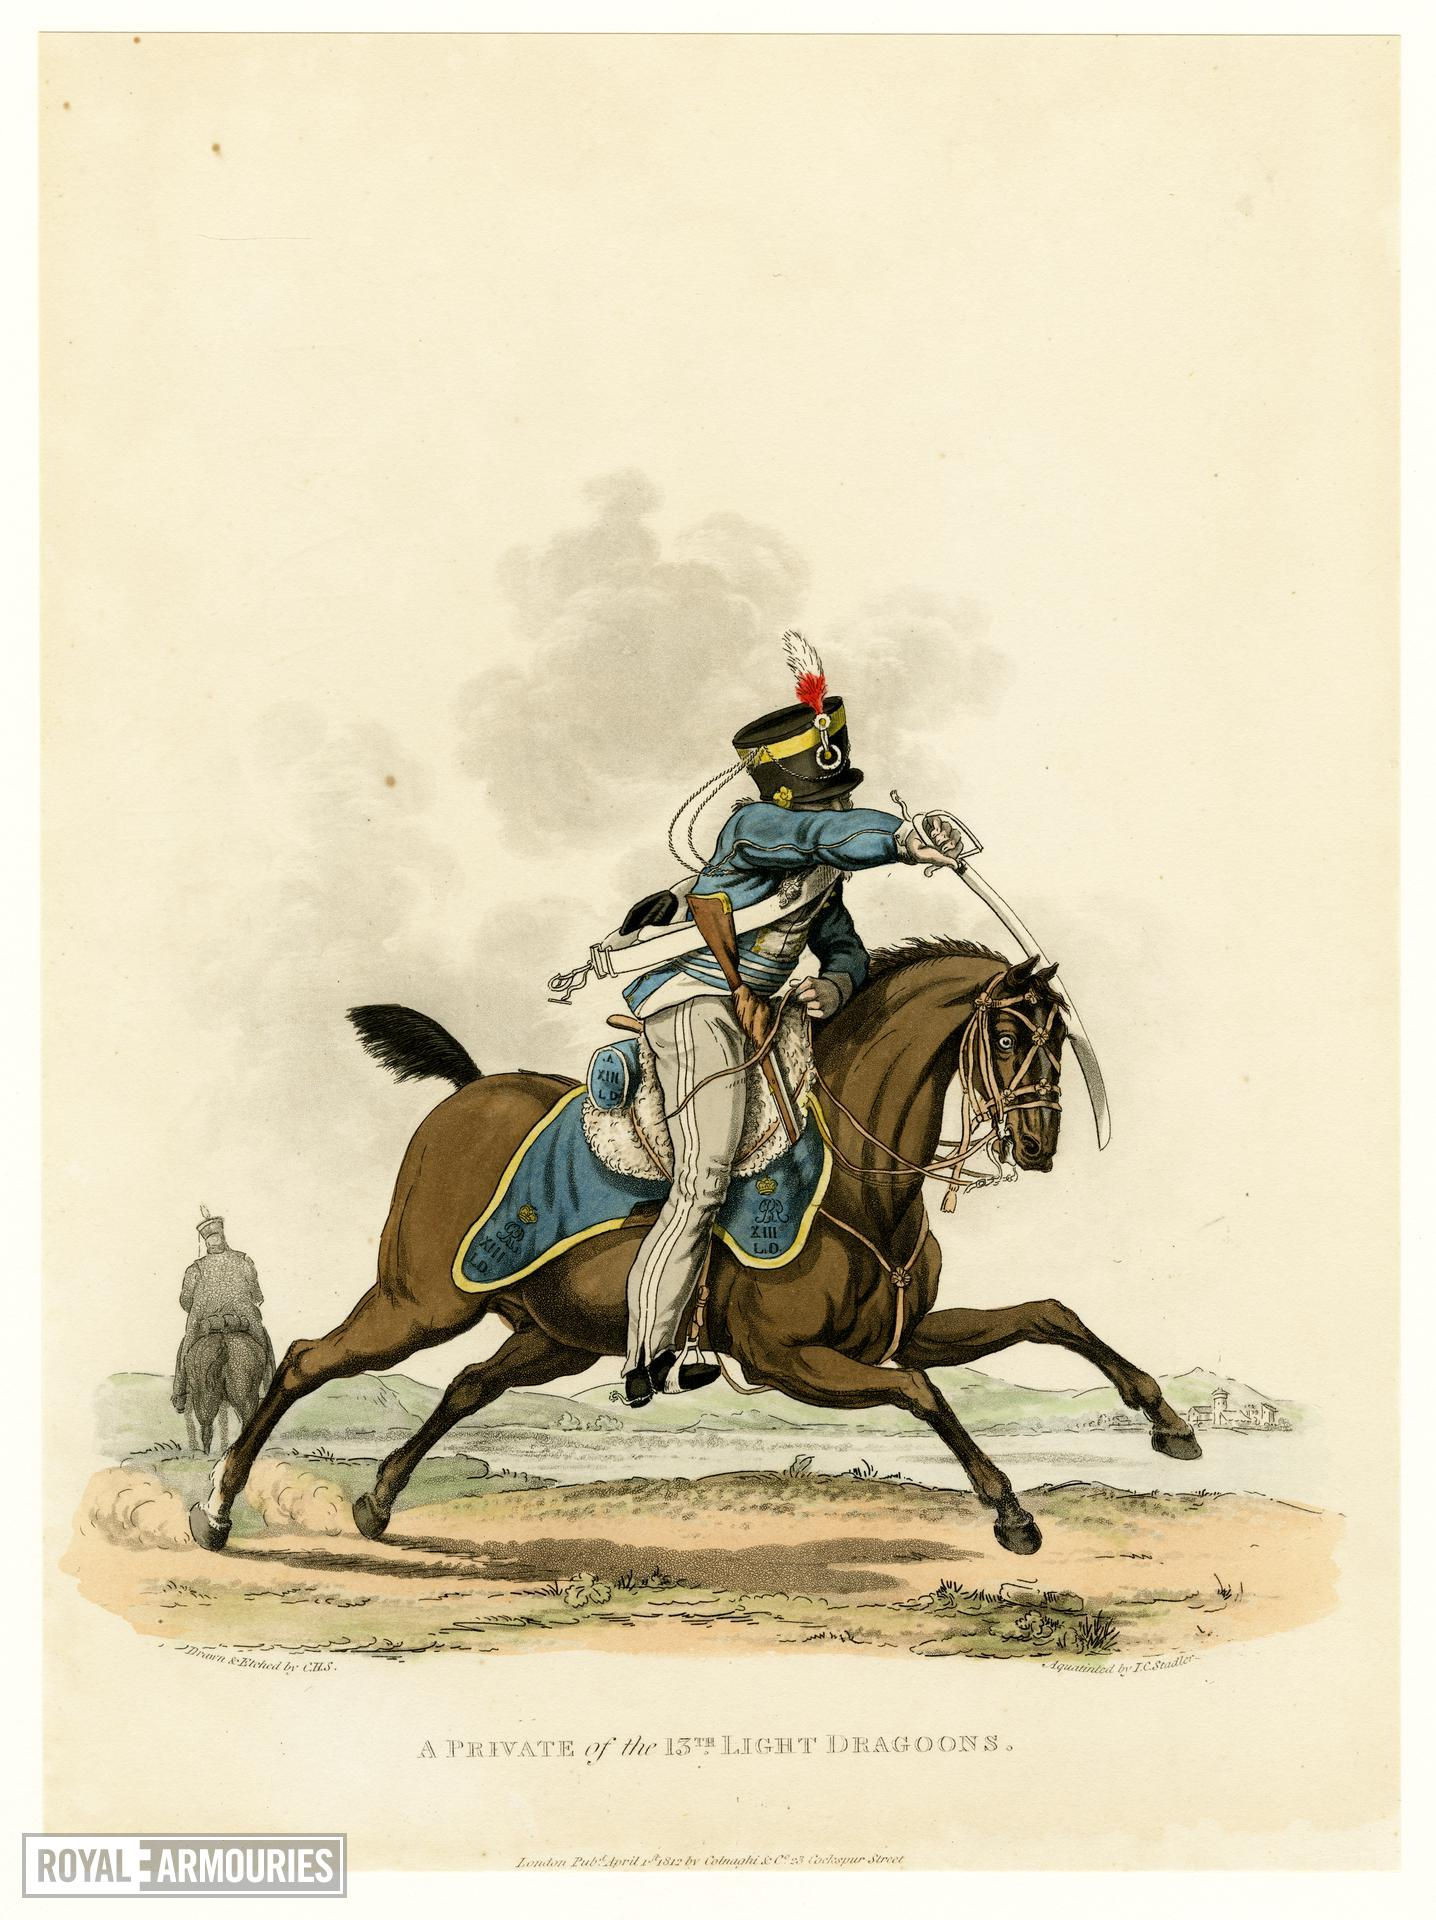 A private of the 13th Light Dragoons, 1812. Aquatint by J C Stadler after Charles Hamilton Smith. London, published 1st April 1812 by Colnaghi & Co. 23 Cockspur Street.